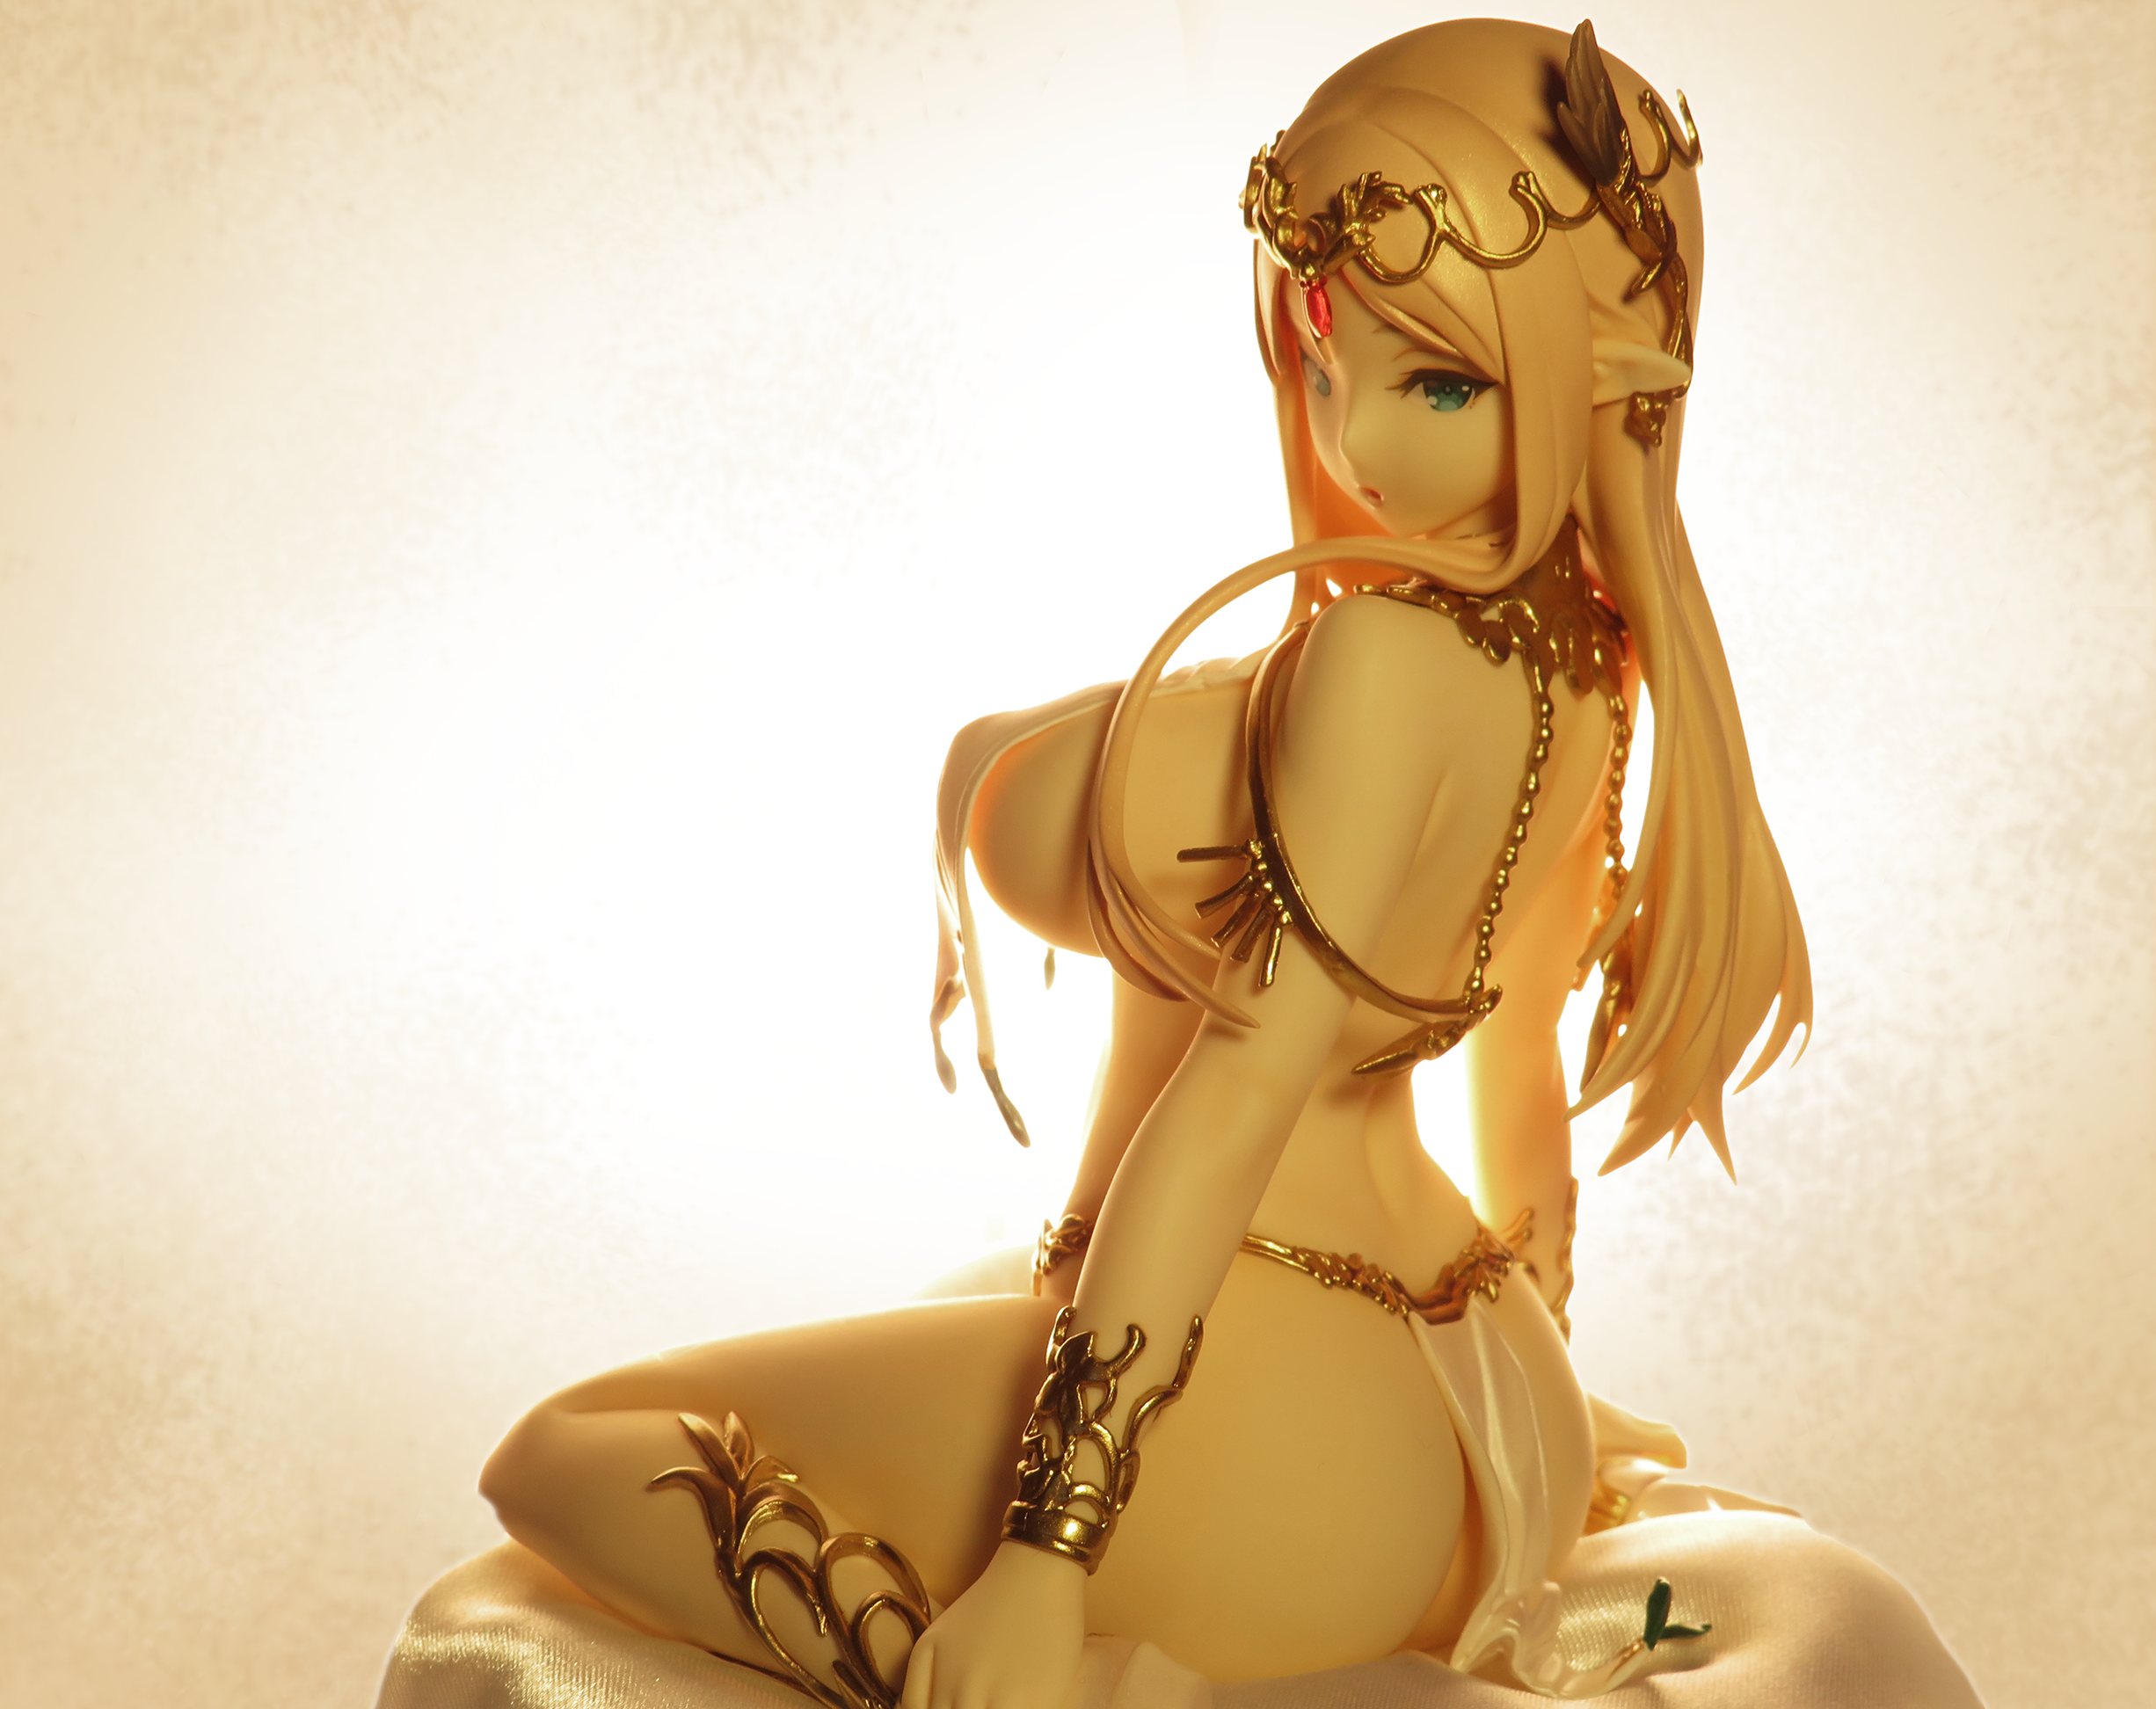 https://static.myfigurecollection.net/upload/pictures/2020/10/09/2537223.png